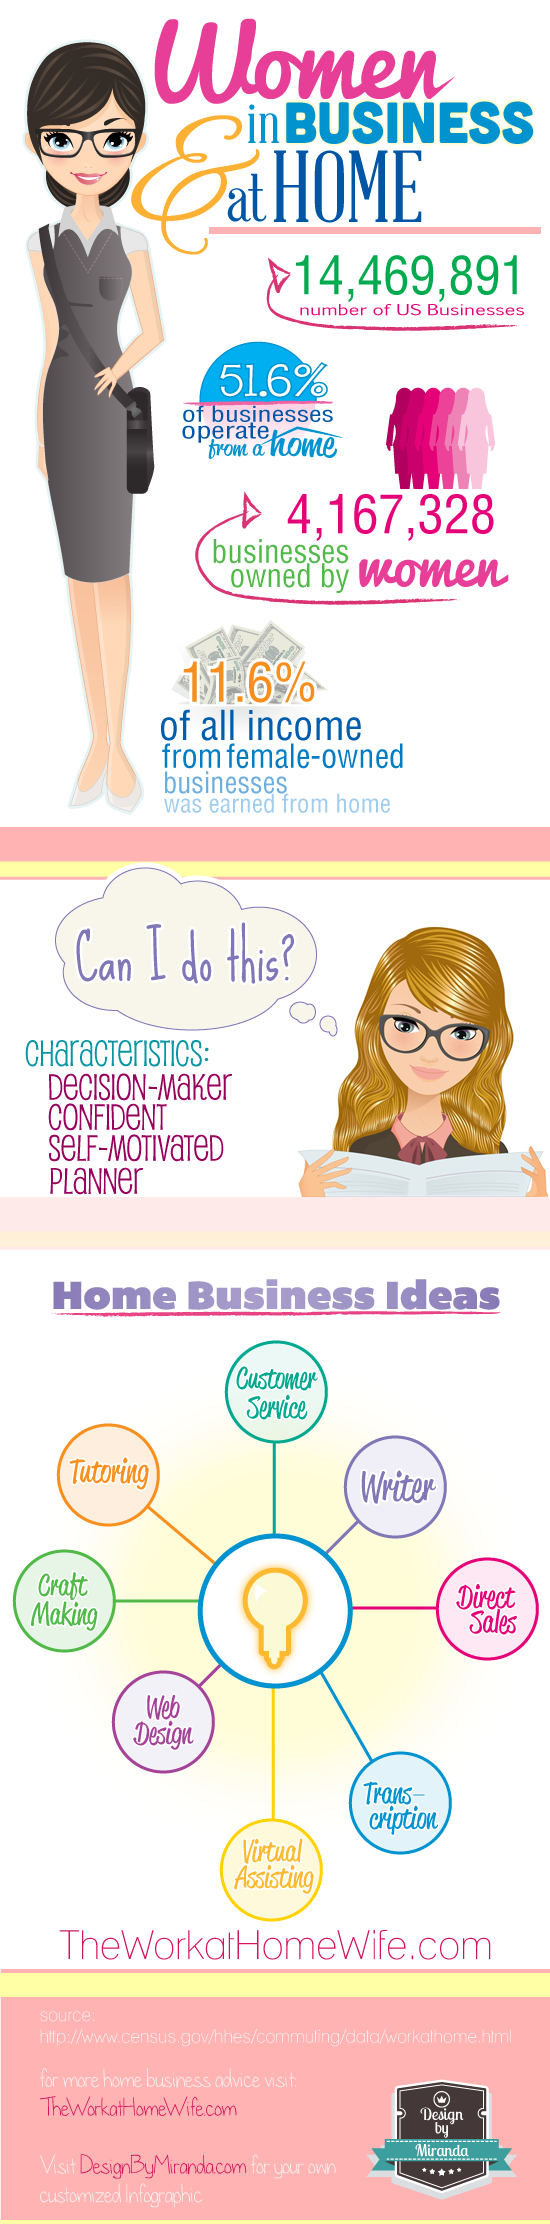 Women In Home-Based Business: Infographic | Business and Blogging